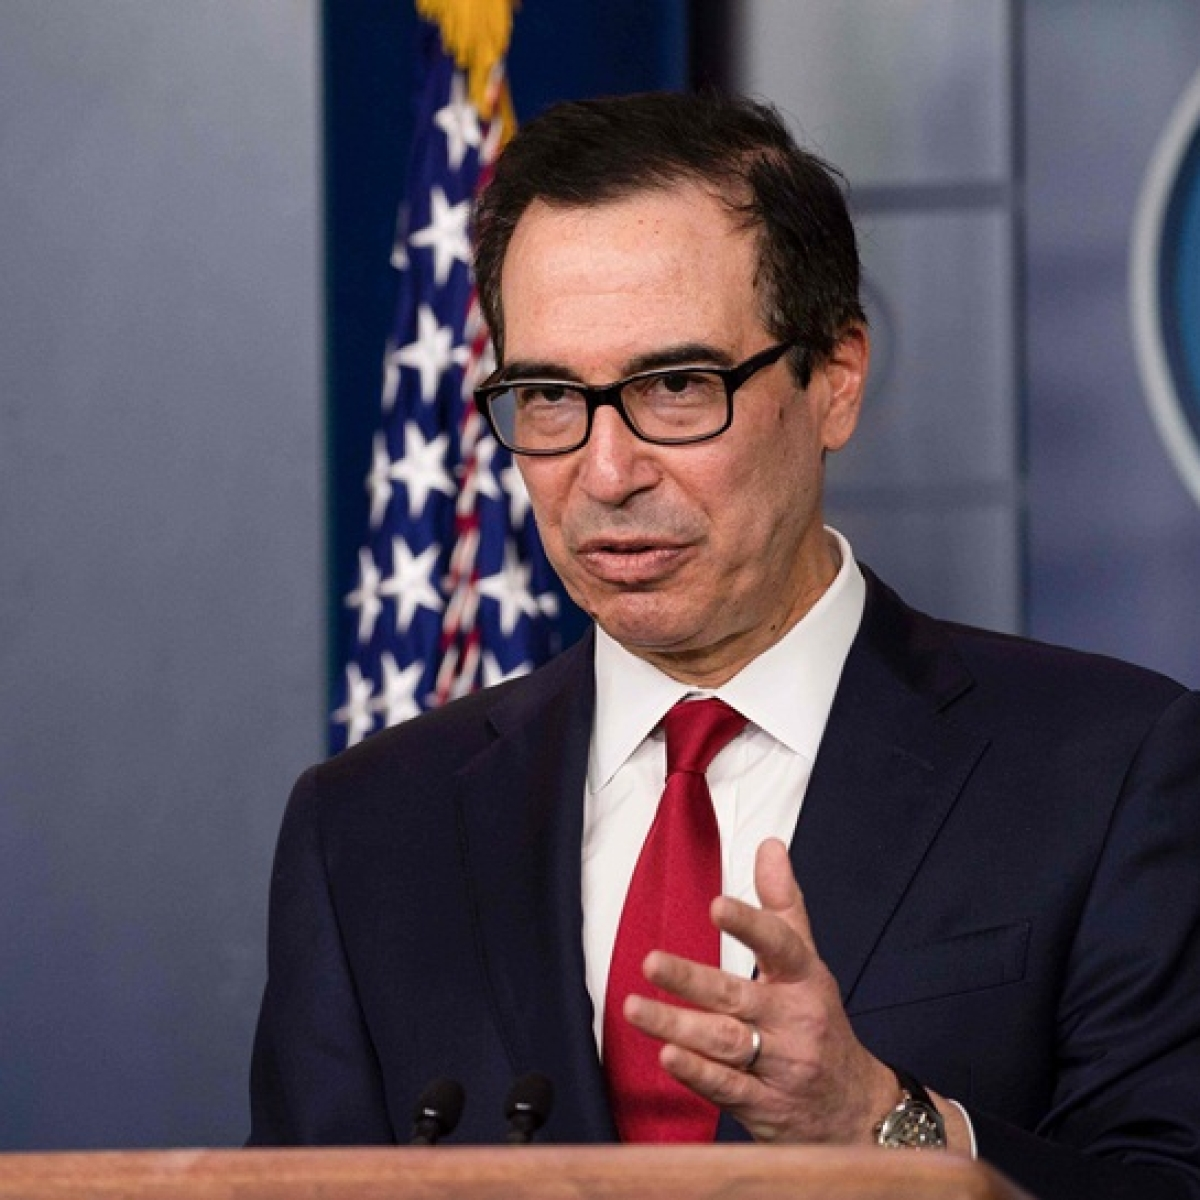 Cryptocurrency is a national security issue, says US Treasury Secretary